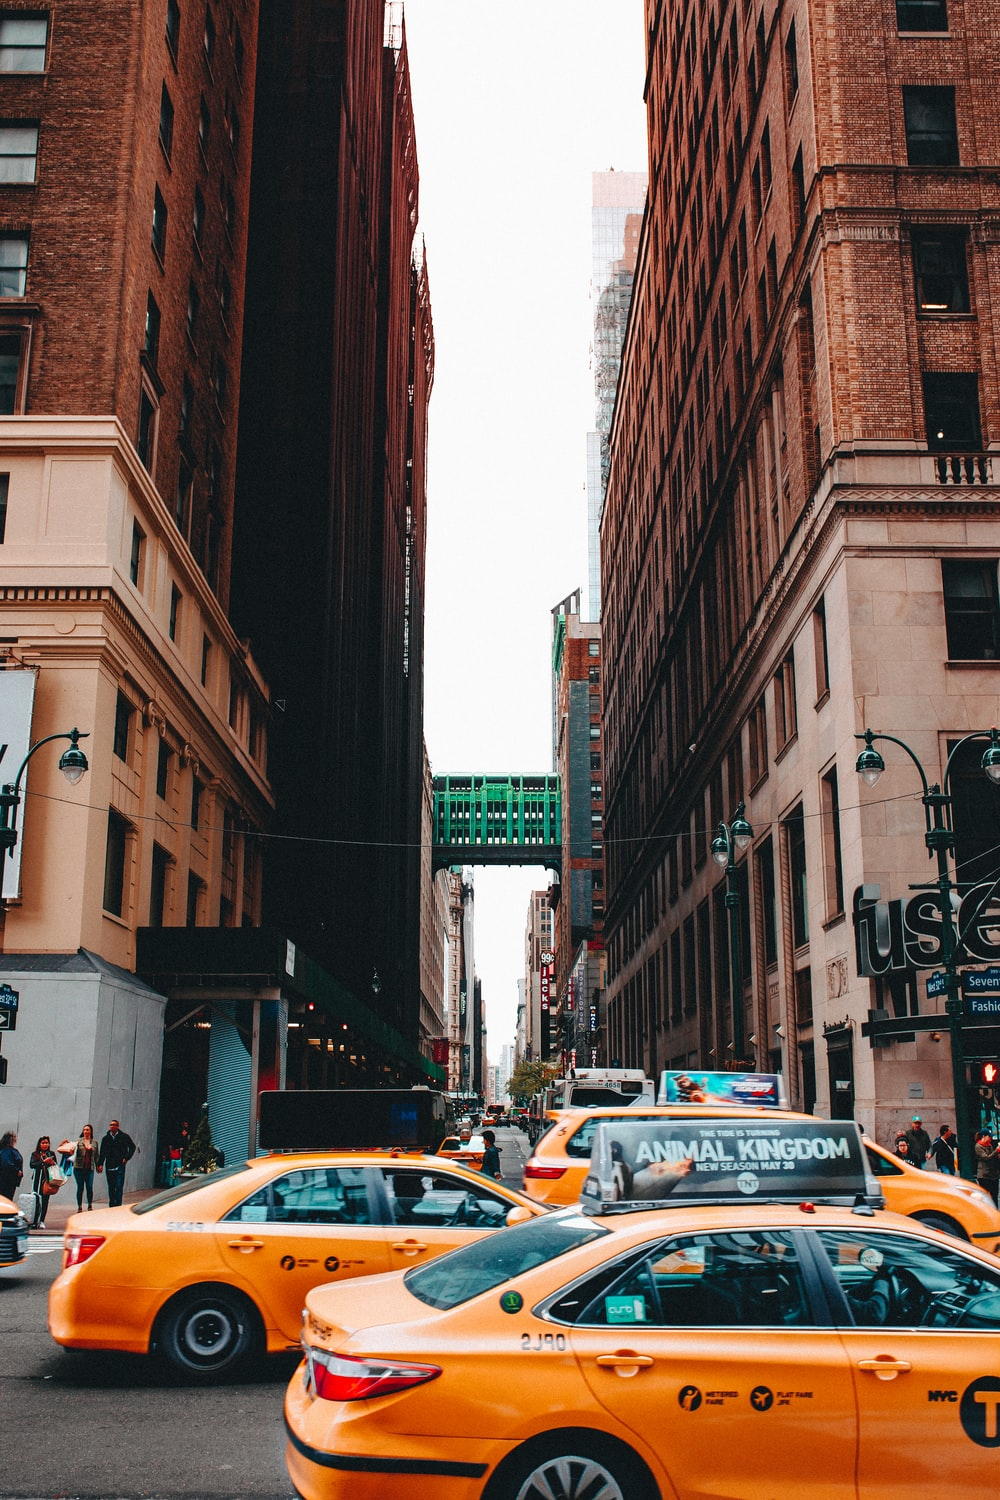 Yandex Taxi Pictures | Download Free Images on Unsplash